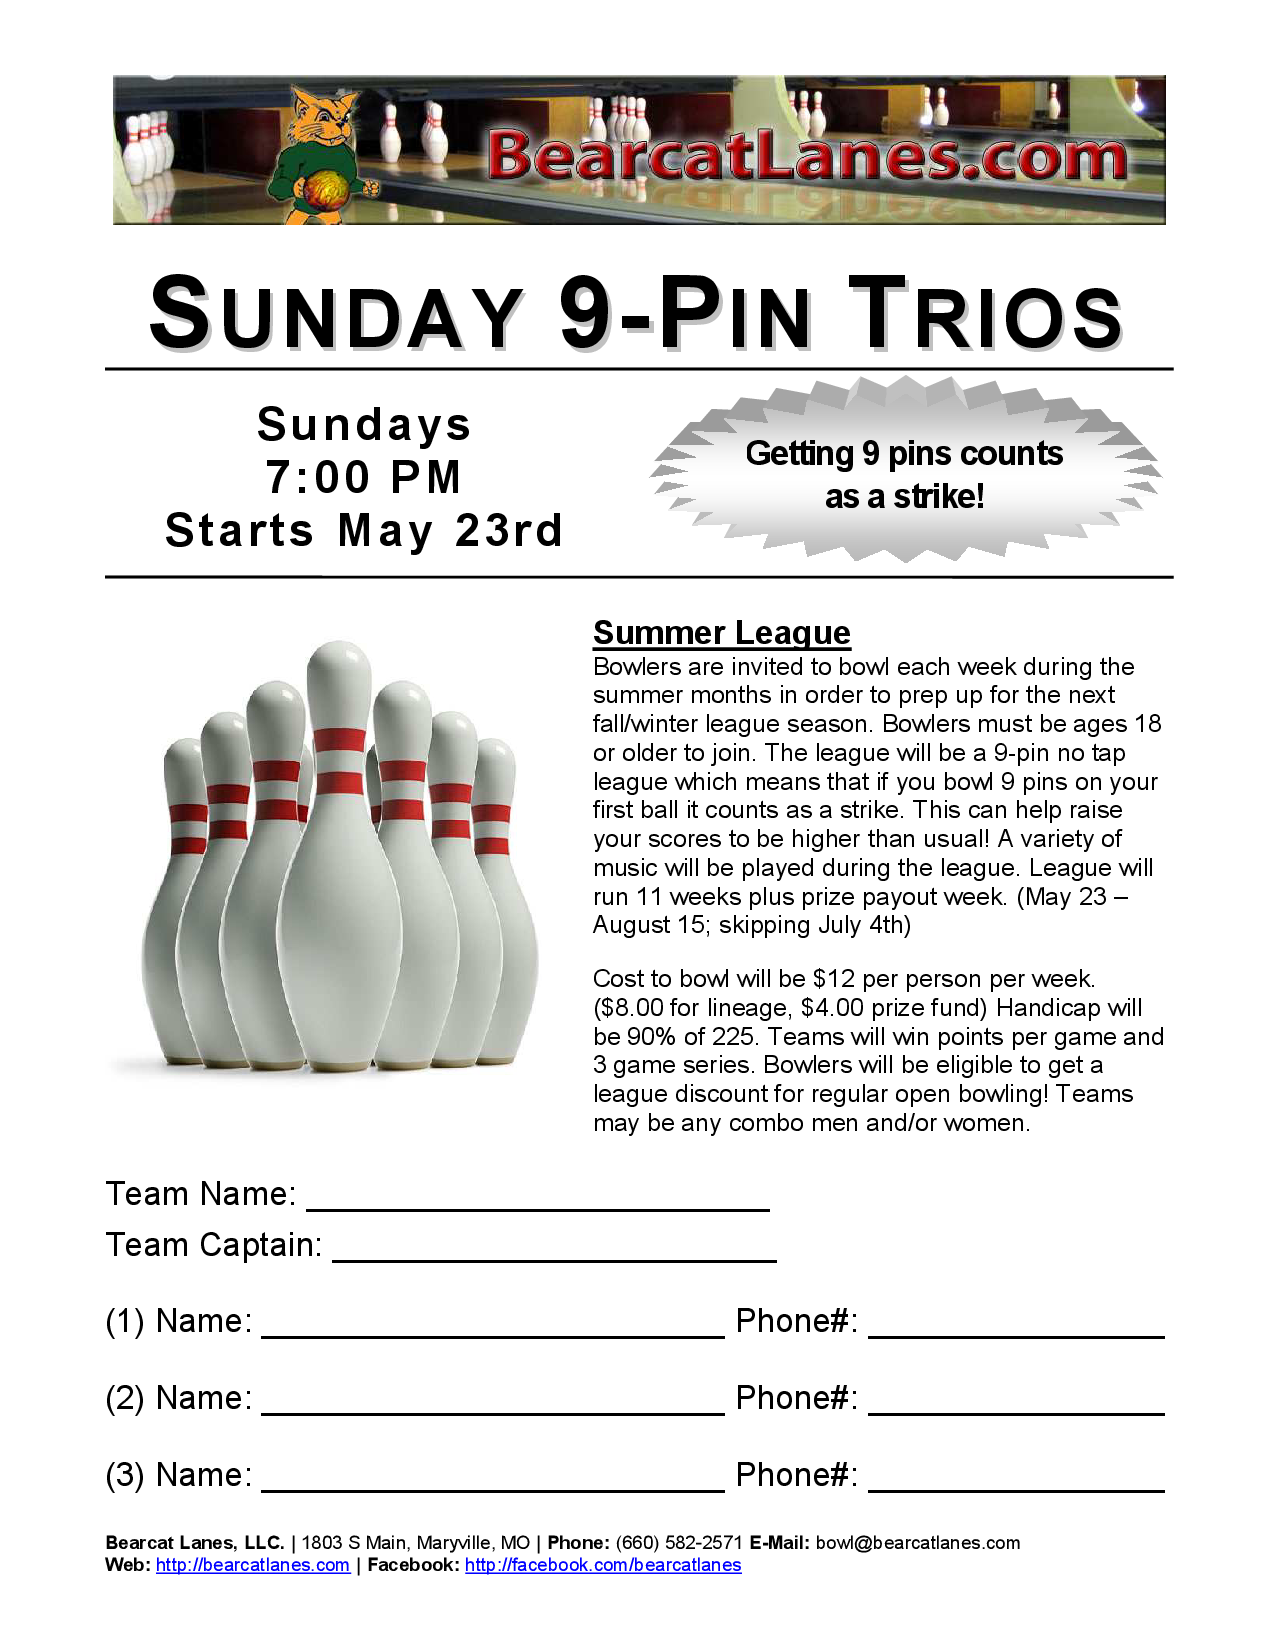 Sunday 9-Pin Trios